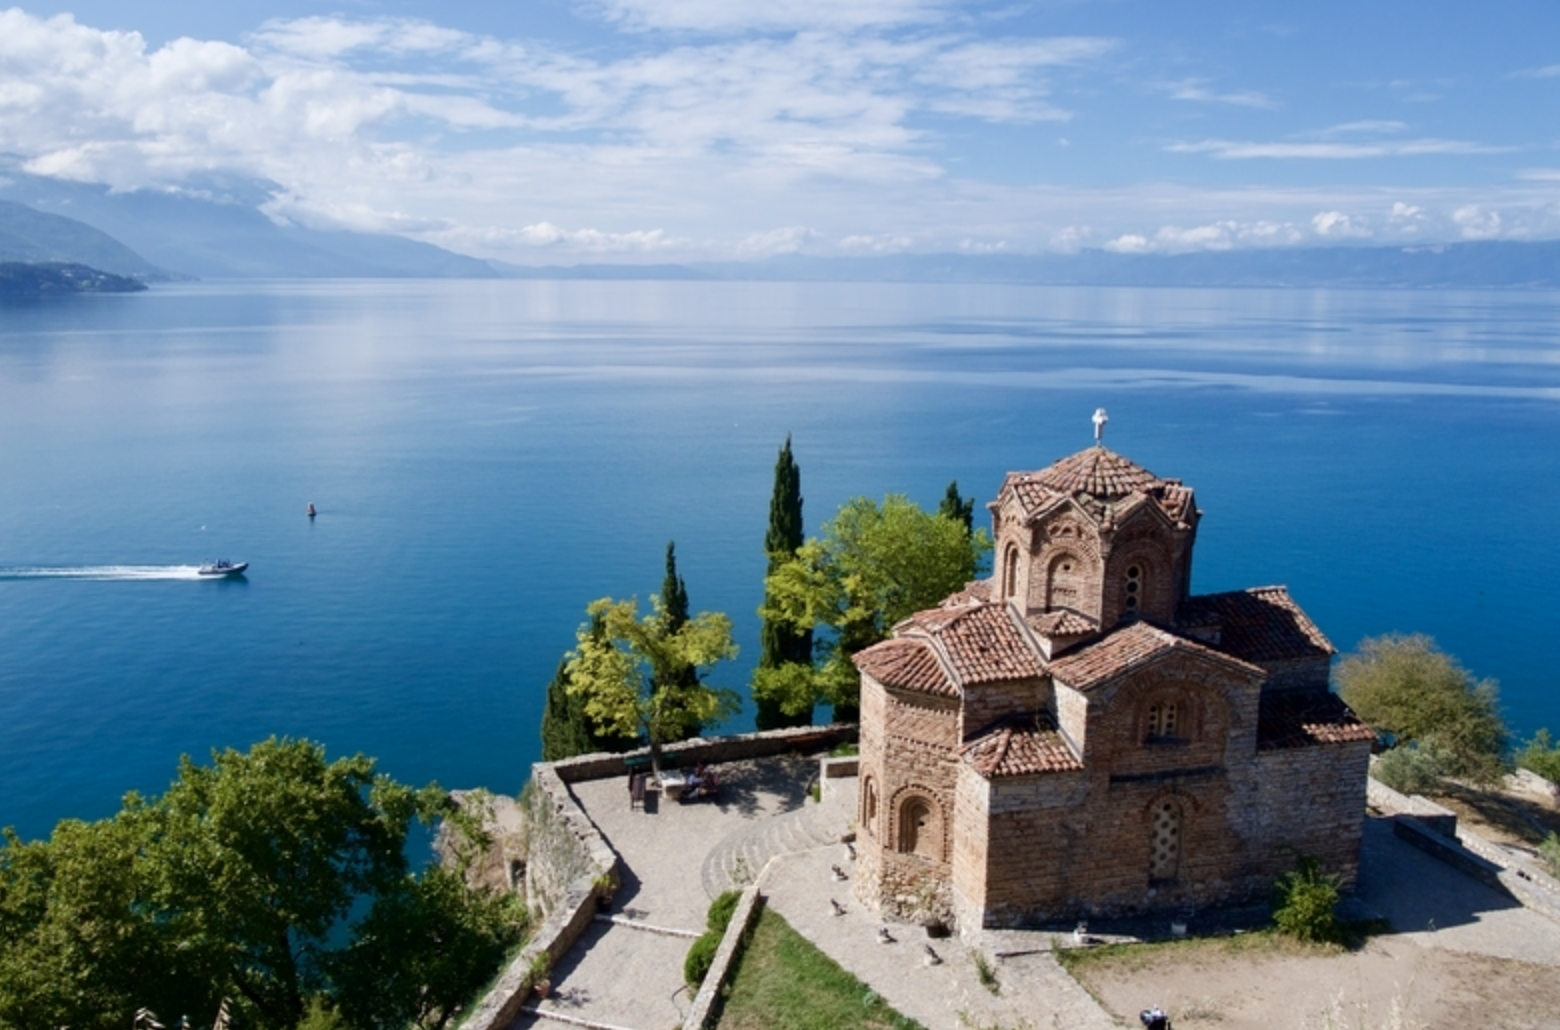 UNESCO proposes Lake Ohrid as a endangered site, due to state inaction